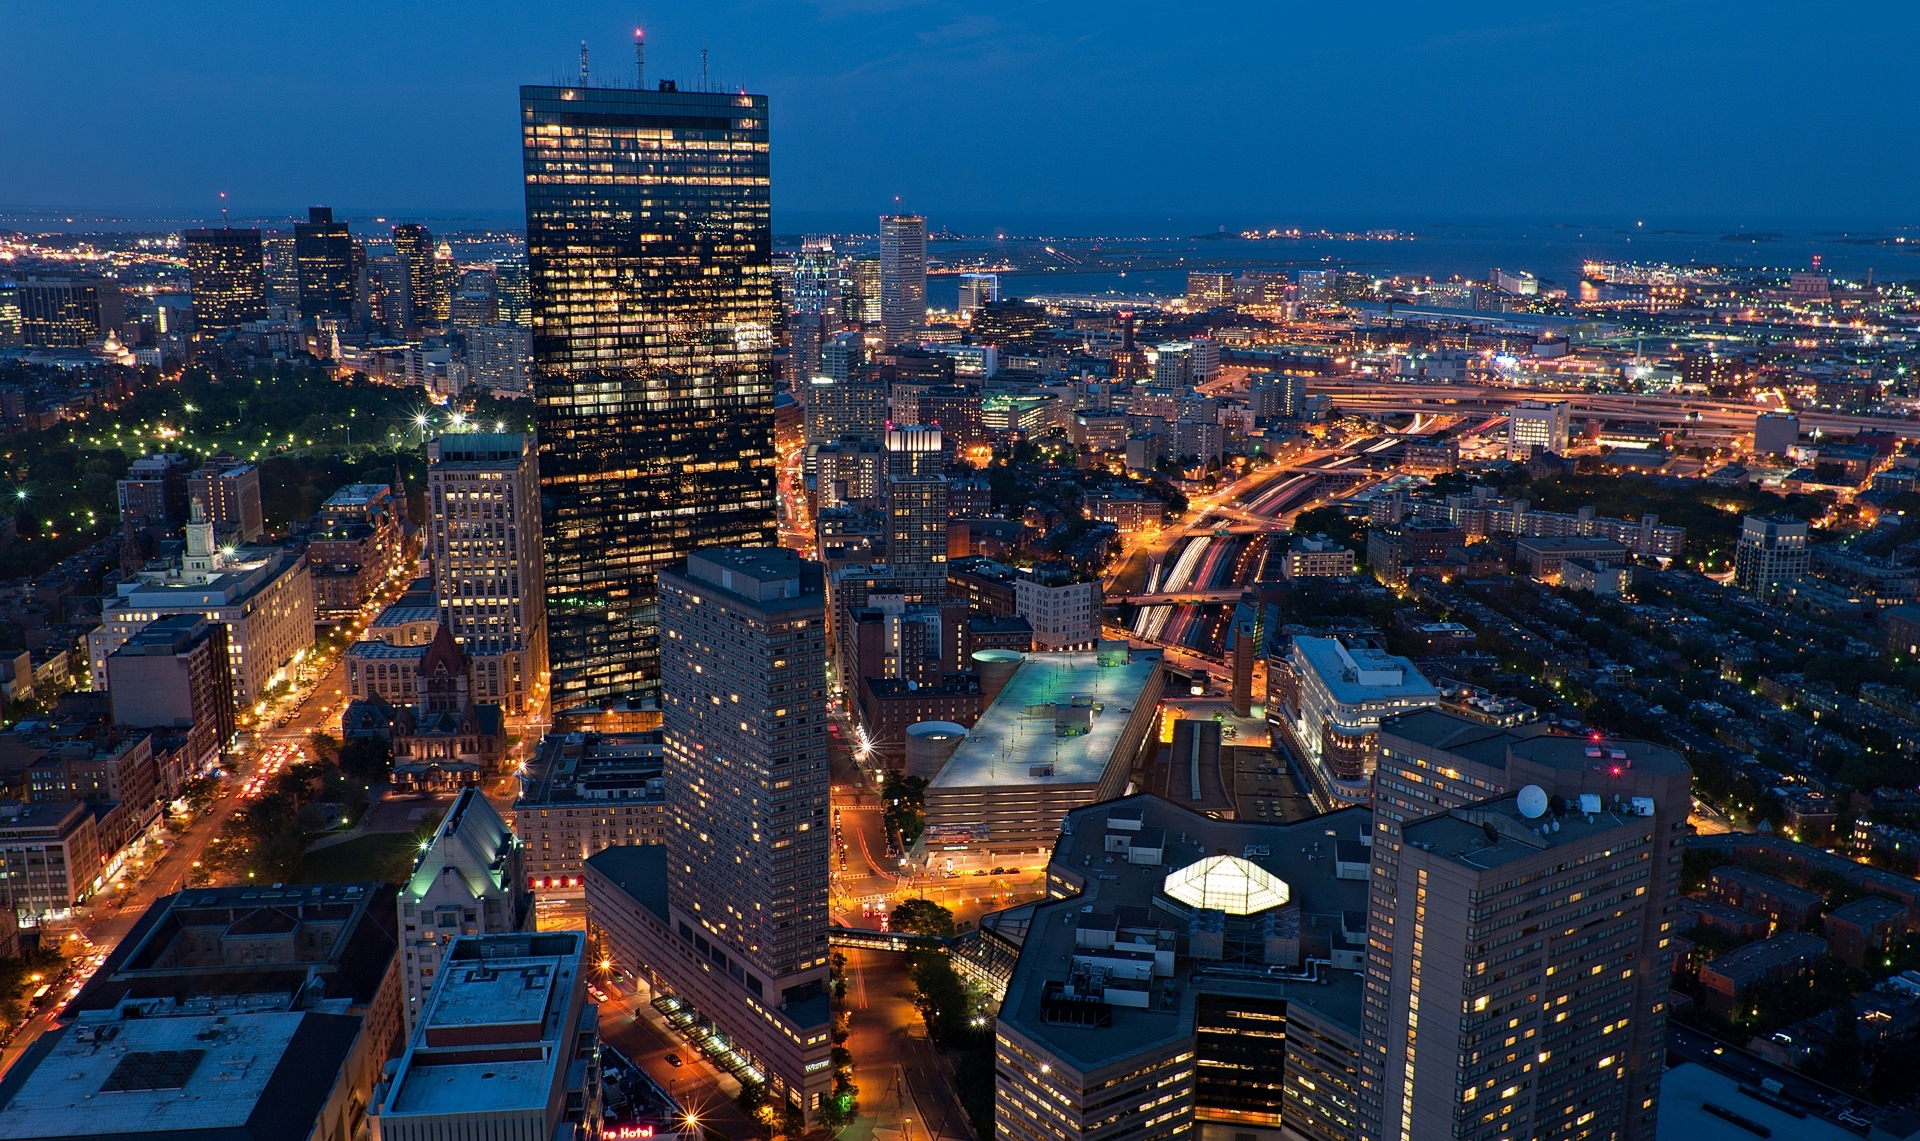 usa-massachusetts-boston-city-town